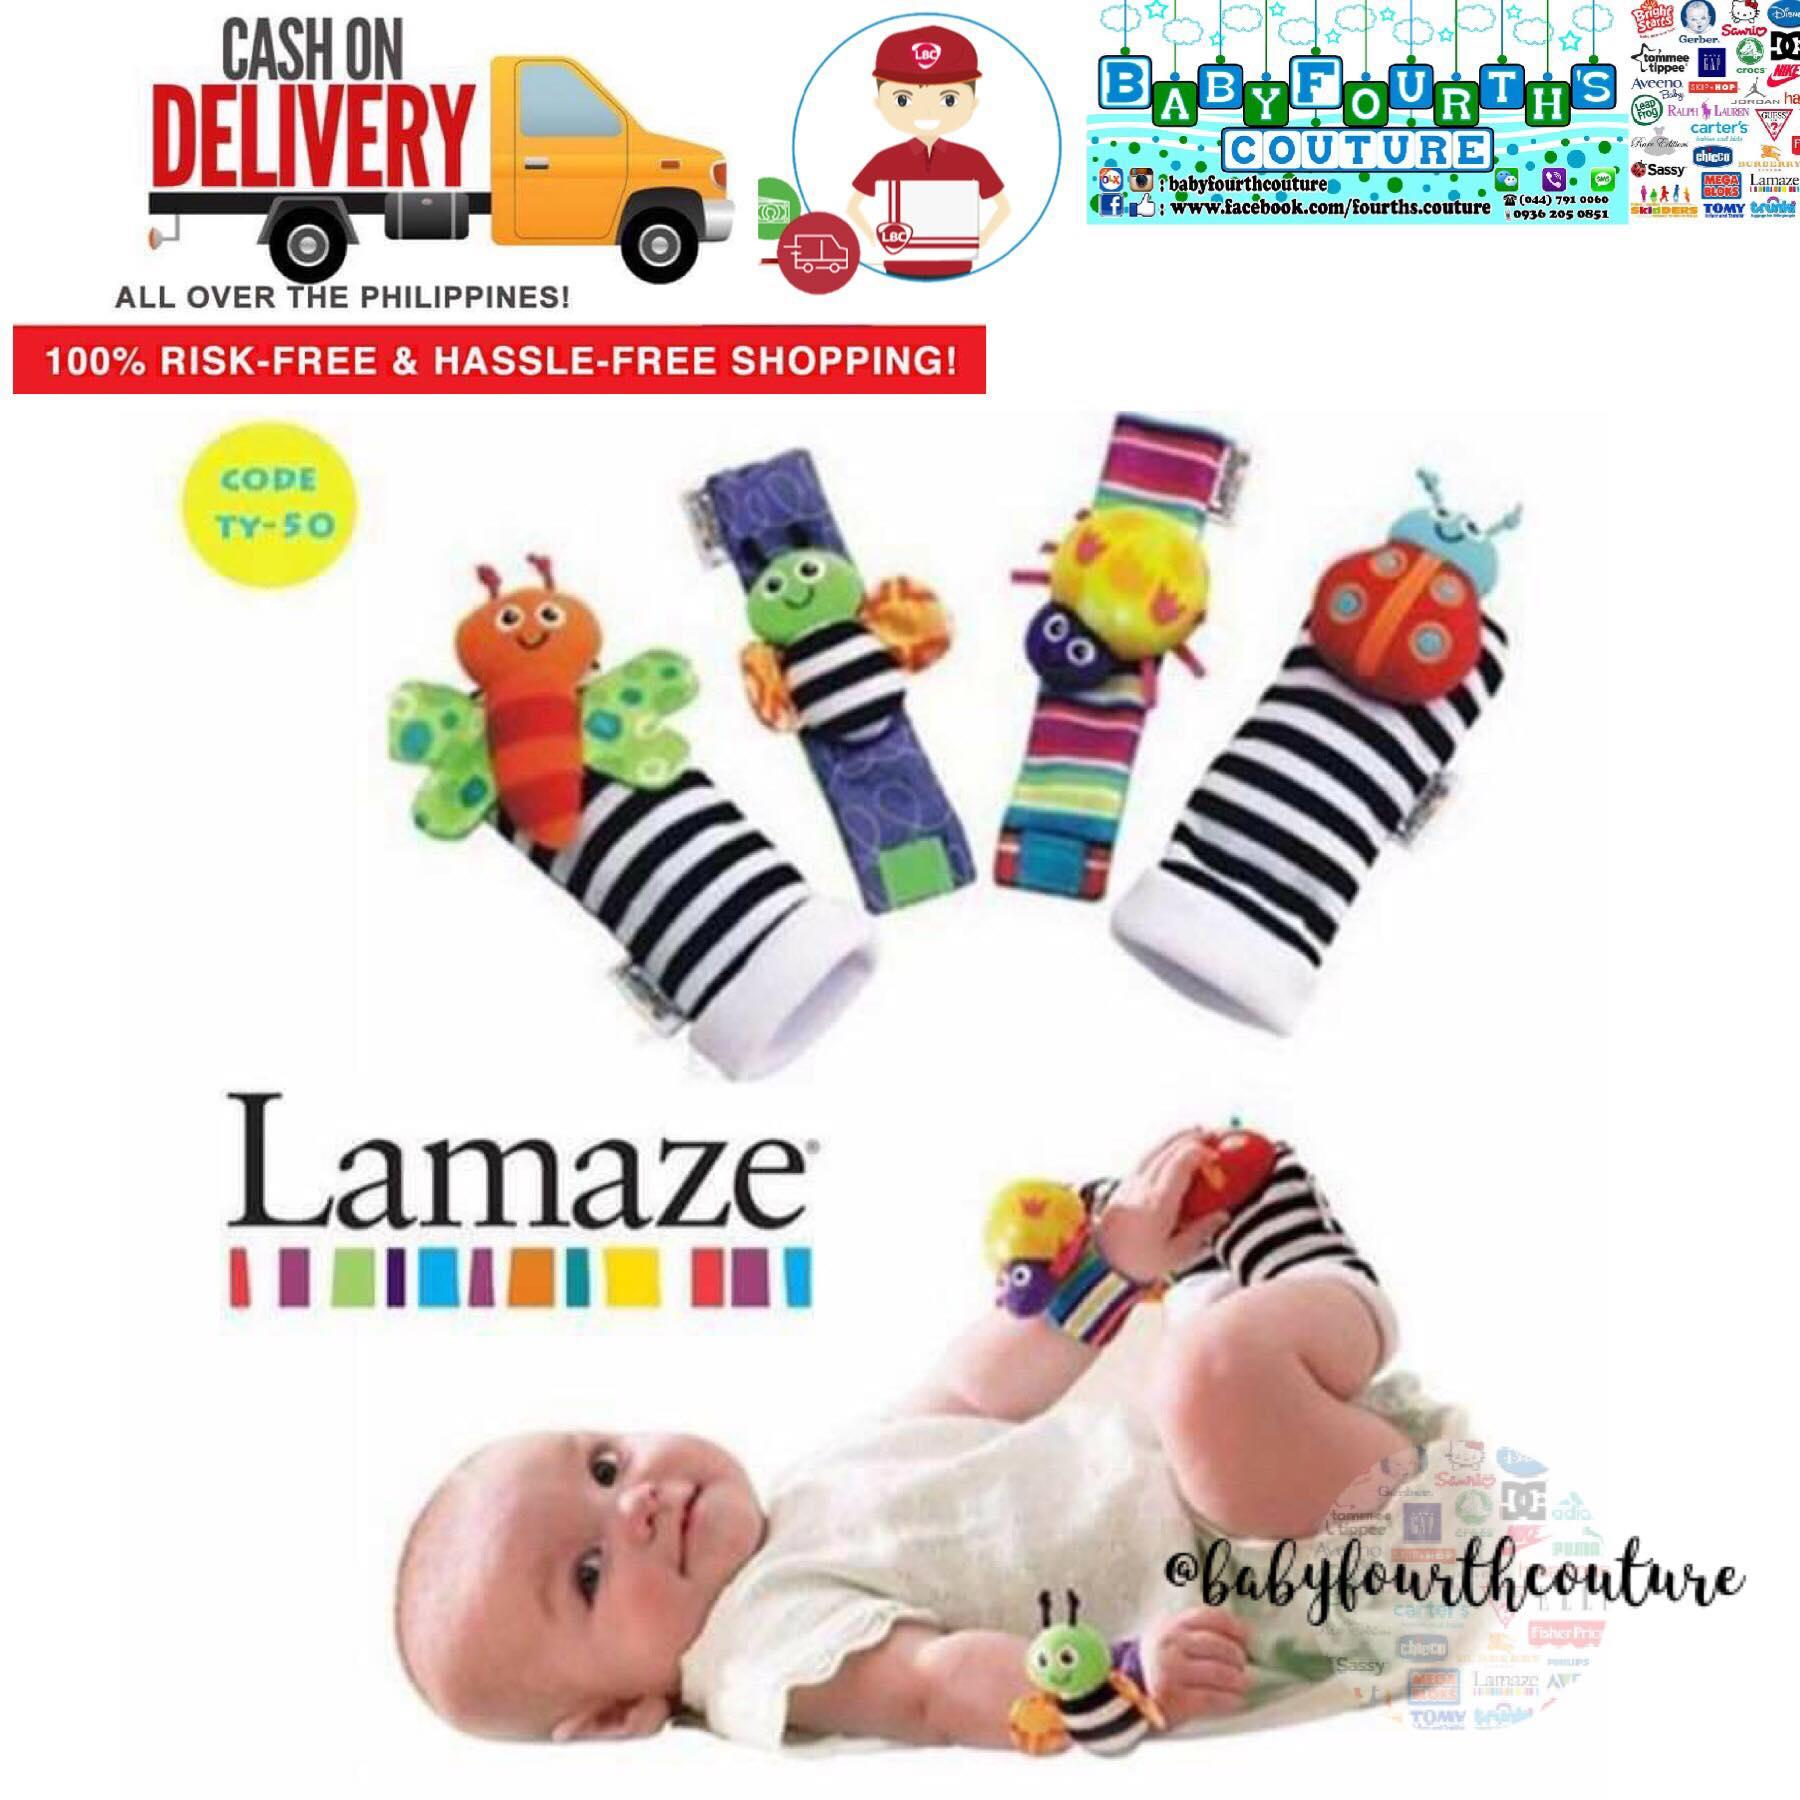 Lamaze Baby Wrist Rattles and Foot FInder Set  sc 1 st  Lazada Philippines & Lamaze Philippines: Lamaze price list - Books \u0026 Toys for Kids for ...